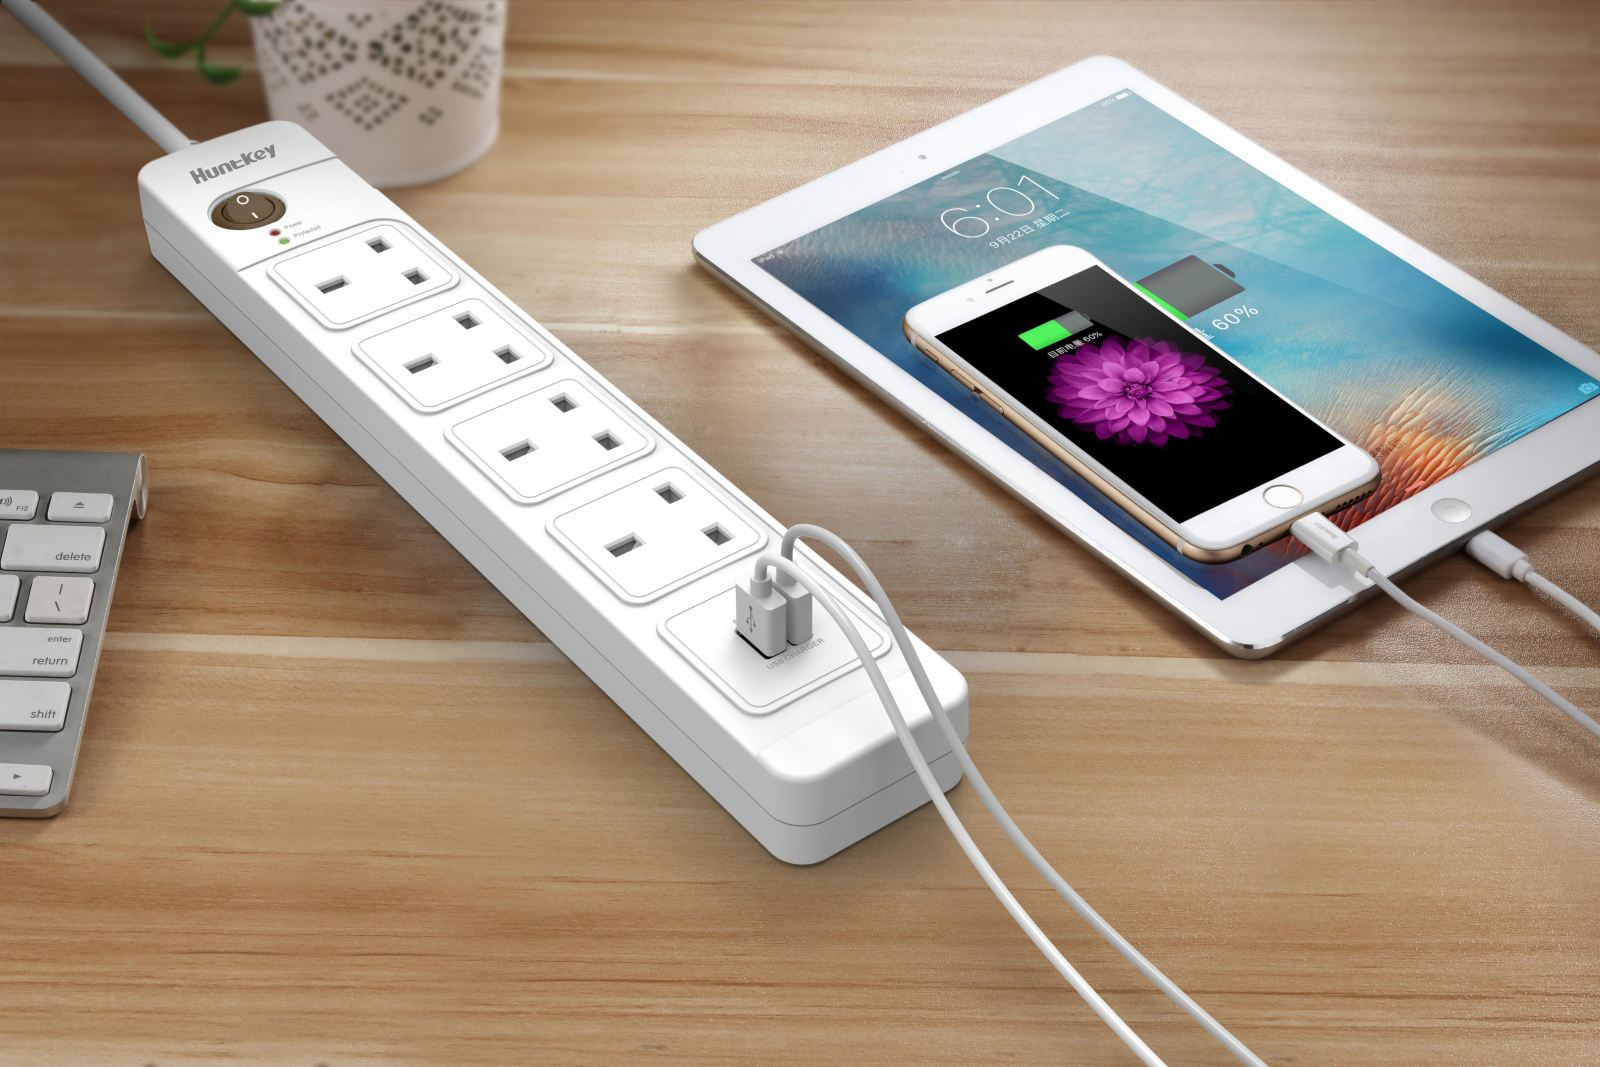 20170410095917994 Huntkey Power Strip SUL507 Will Be Available on Amazon